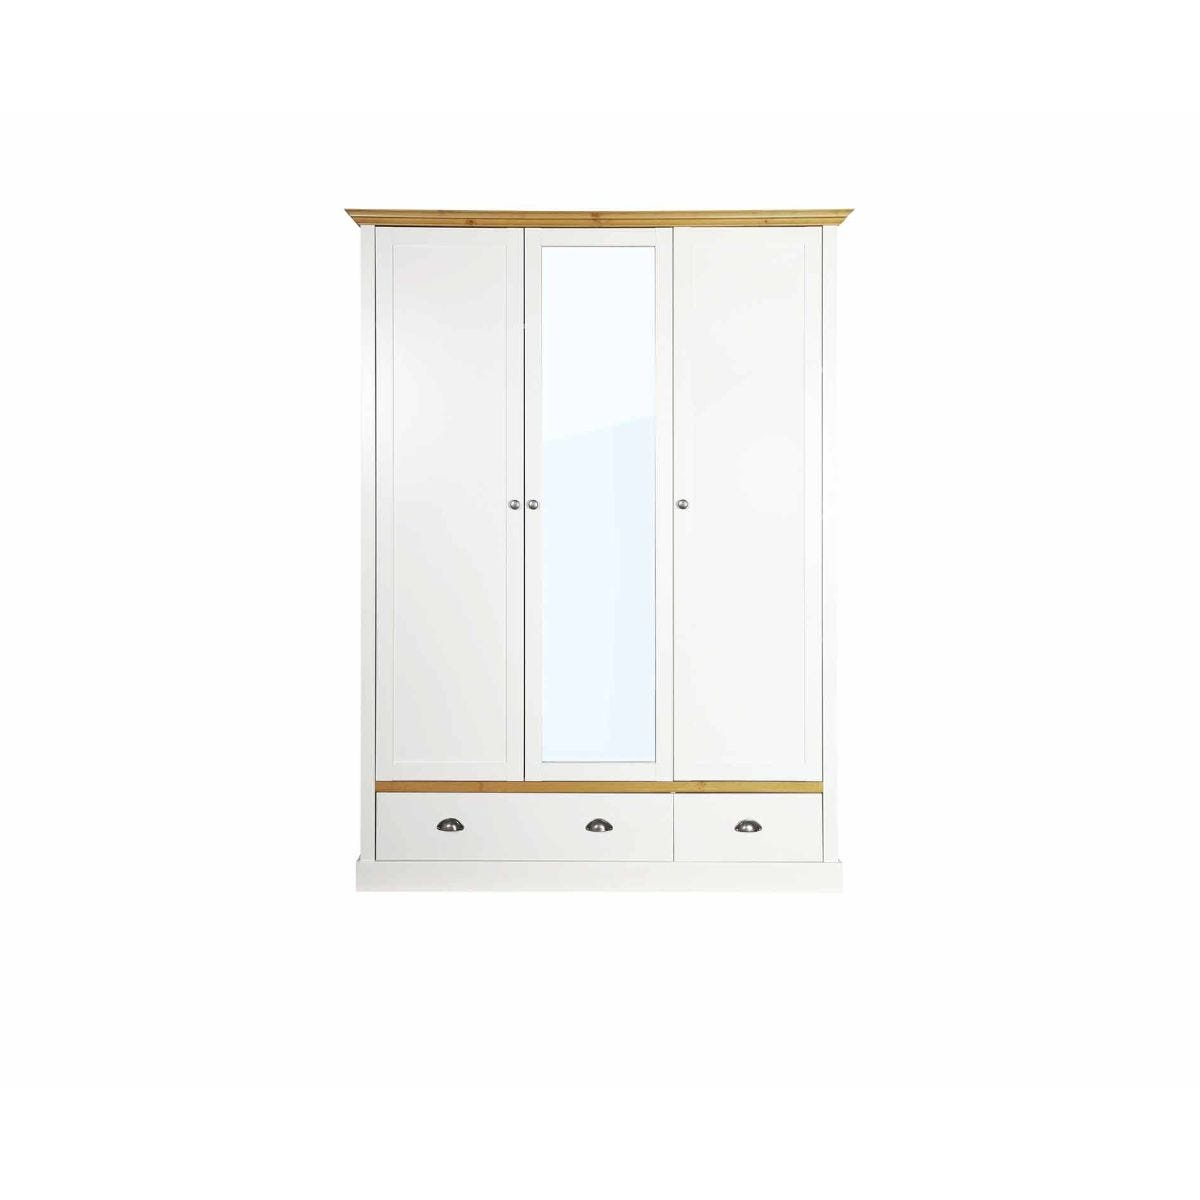 Steens Sandringham 3 Door 2 Drawer Mirrored Wardrobe, White